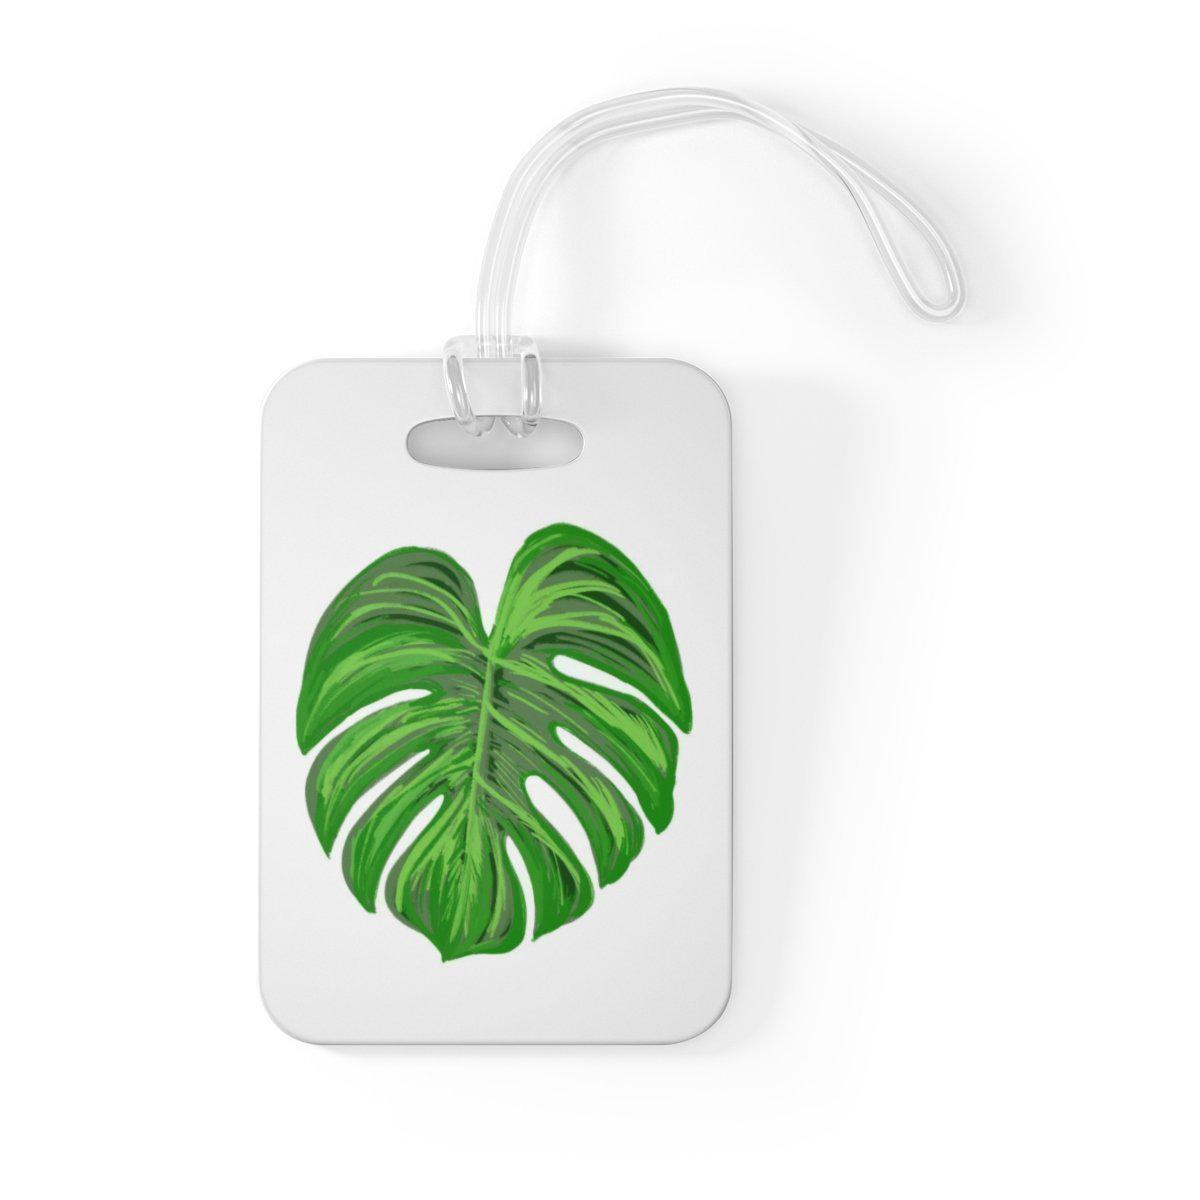 Maison d'Elite Tropical Luggage Tag-Luggage & Bags › Travel Accessories › Luggage Tags-Maison d'Elite-One Size-Très Elite